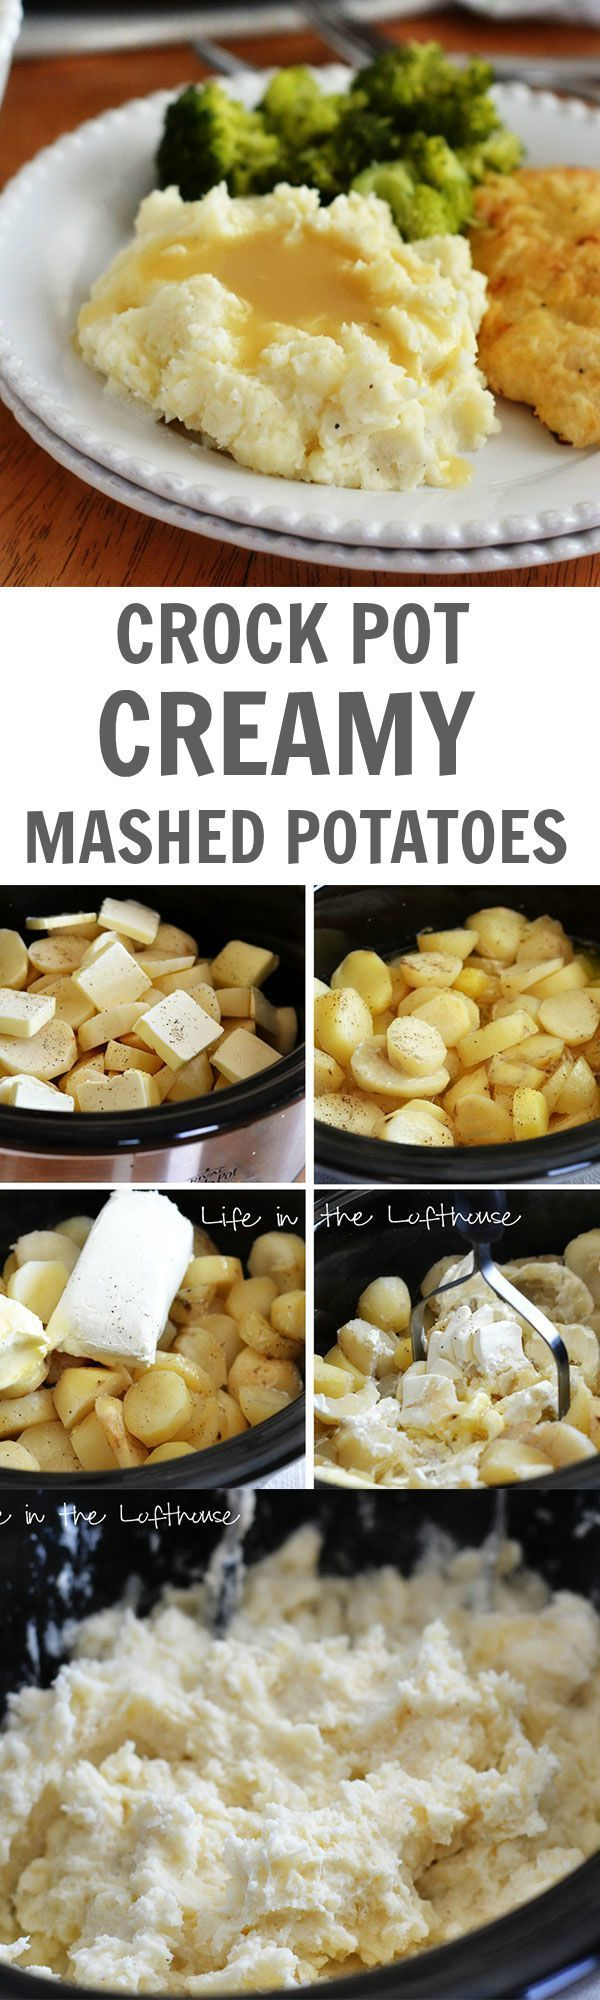 I figured since I started off the week with a side dish, I'd keep them coming. Today I'm sharing theseamazing and creamy mashed potatoes that are made in the crock pot! Yep, you heard read that right, made in the crock pot!   These crock pot mashed potatoes are dreamy heaven and such...Read More »